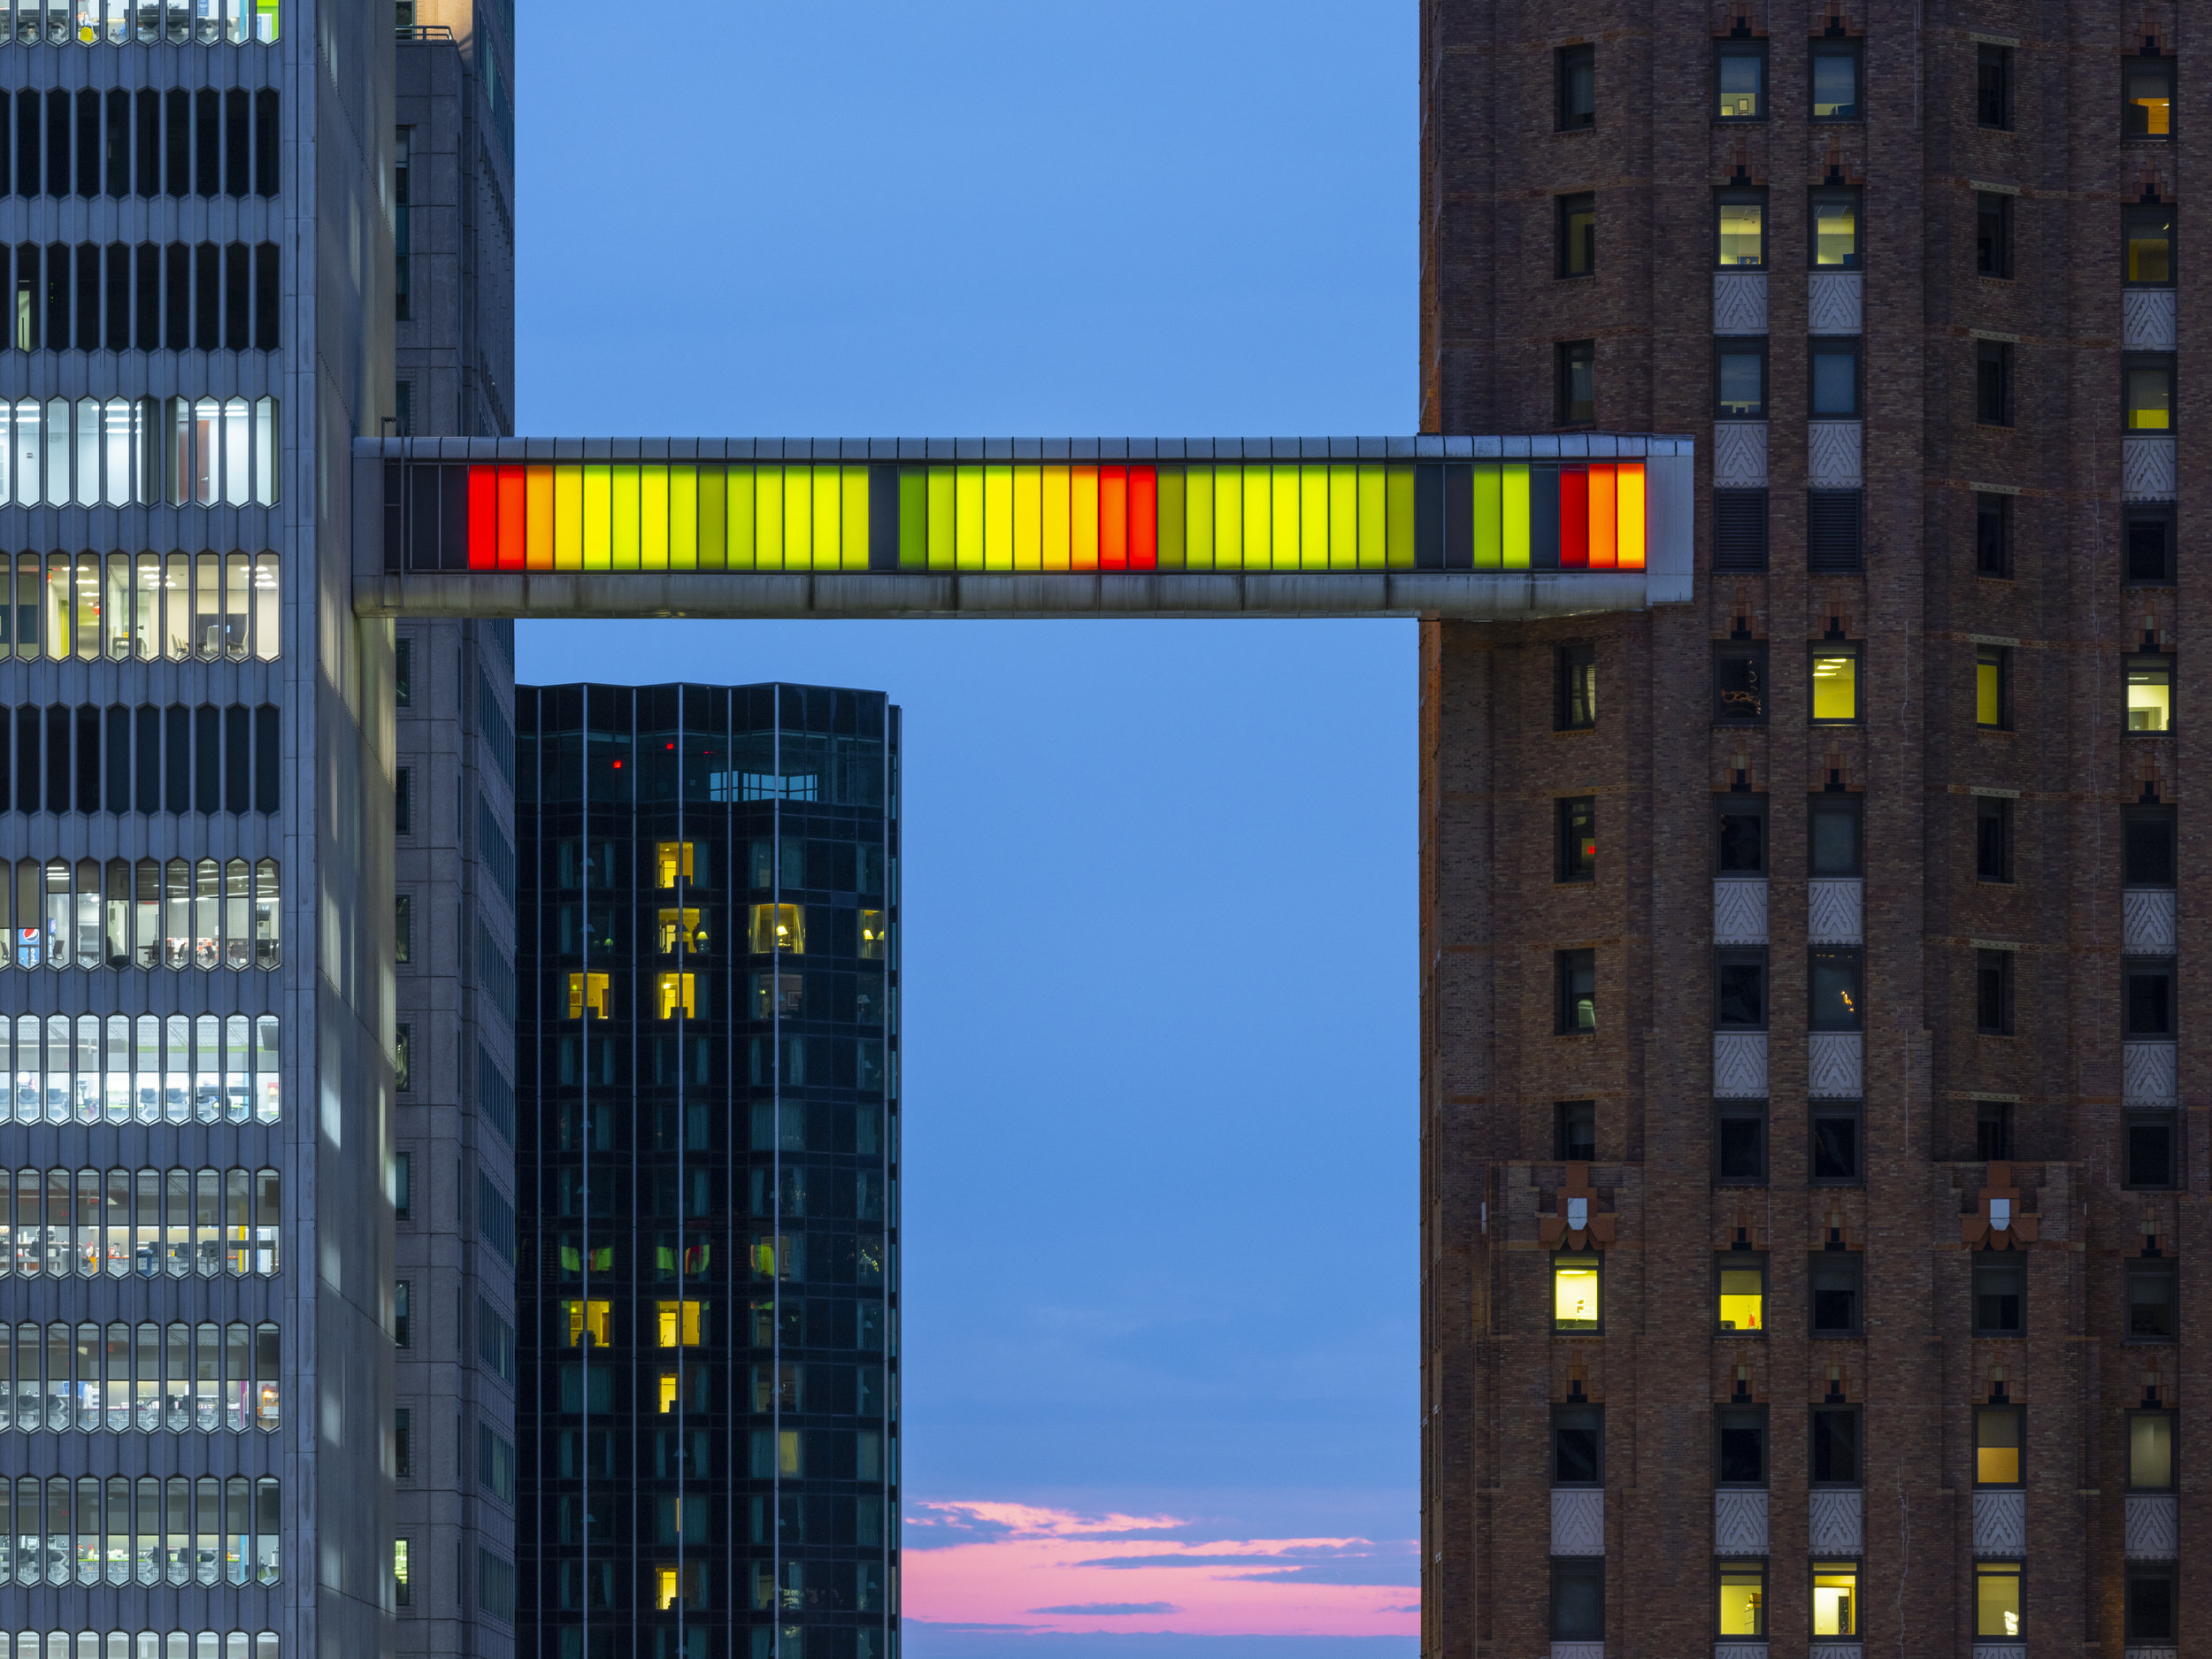 Phillip K. Smith III's Detroit Skybridge